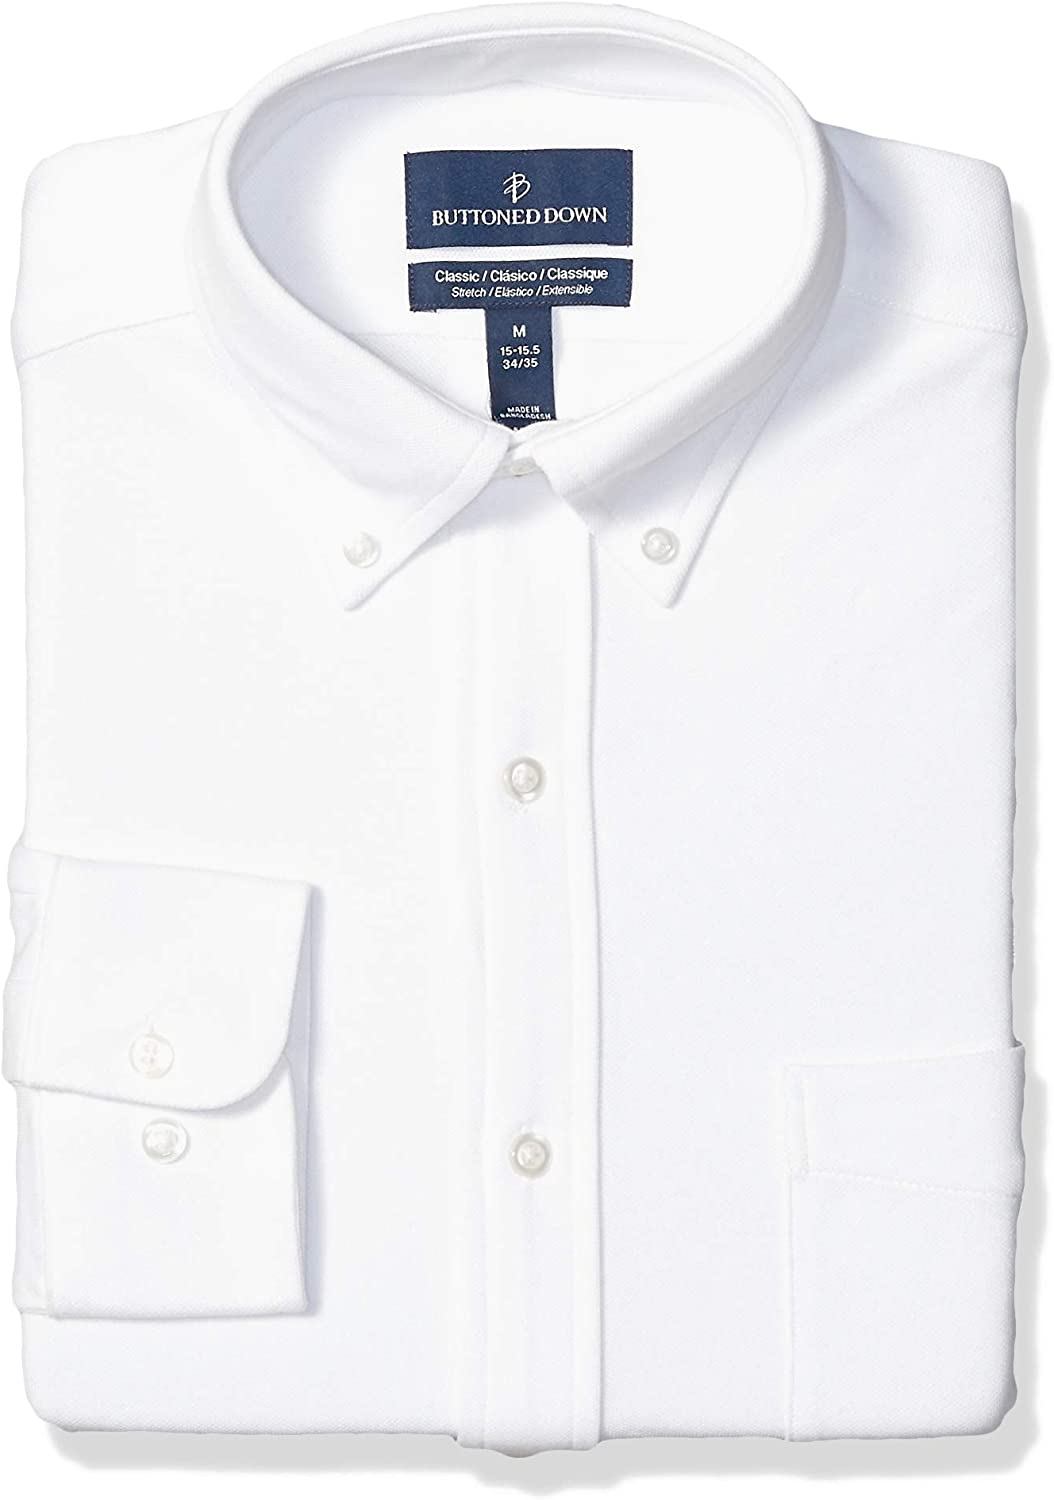 Amazon Brand - BUTTONED DOWN Men's Classic Fit Stretch Knit Dress Shirt, Supima Cotton, Button-Collar